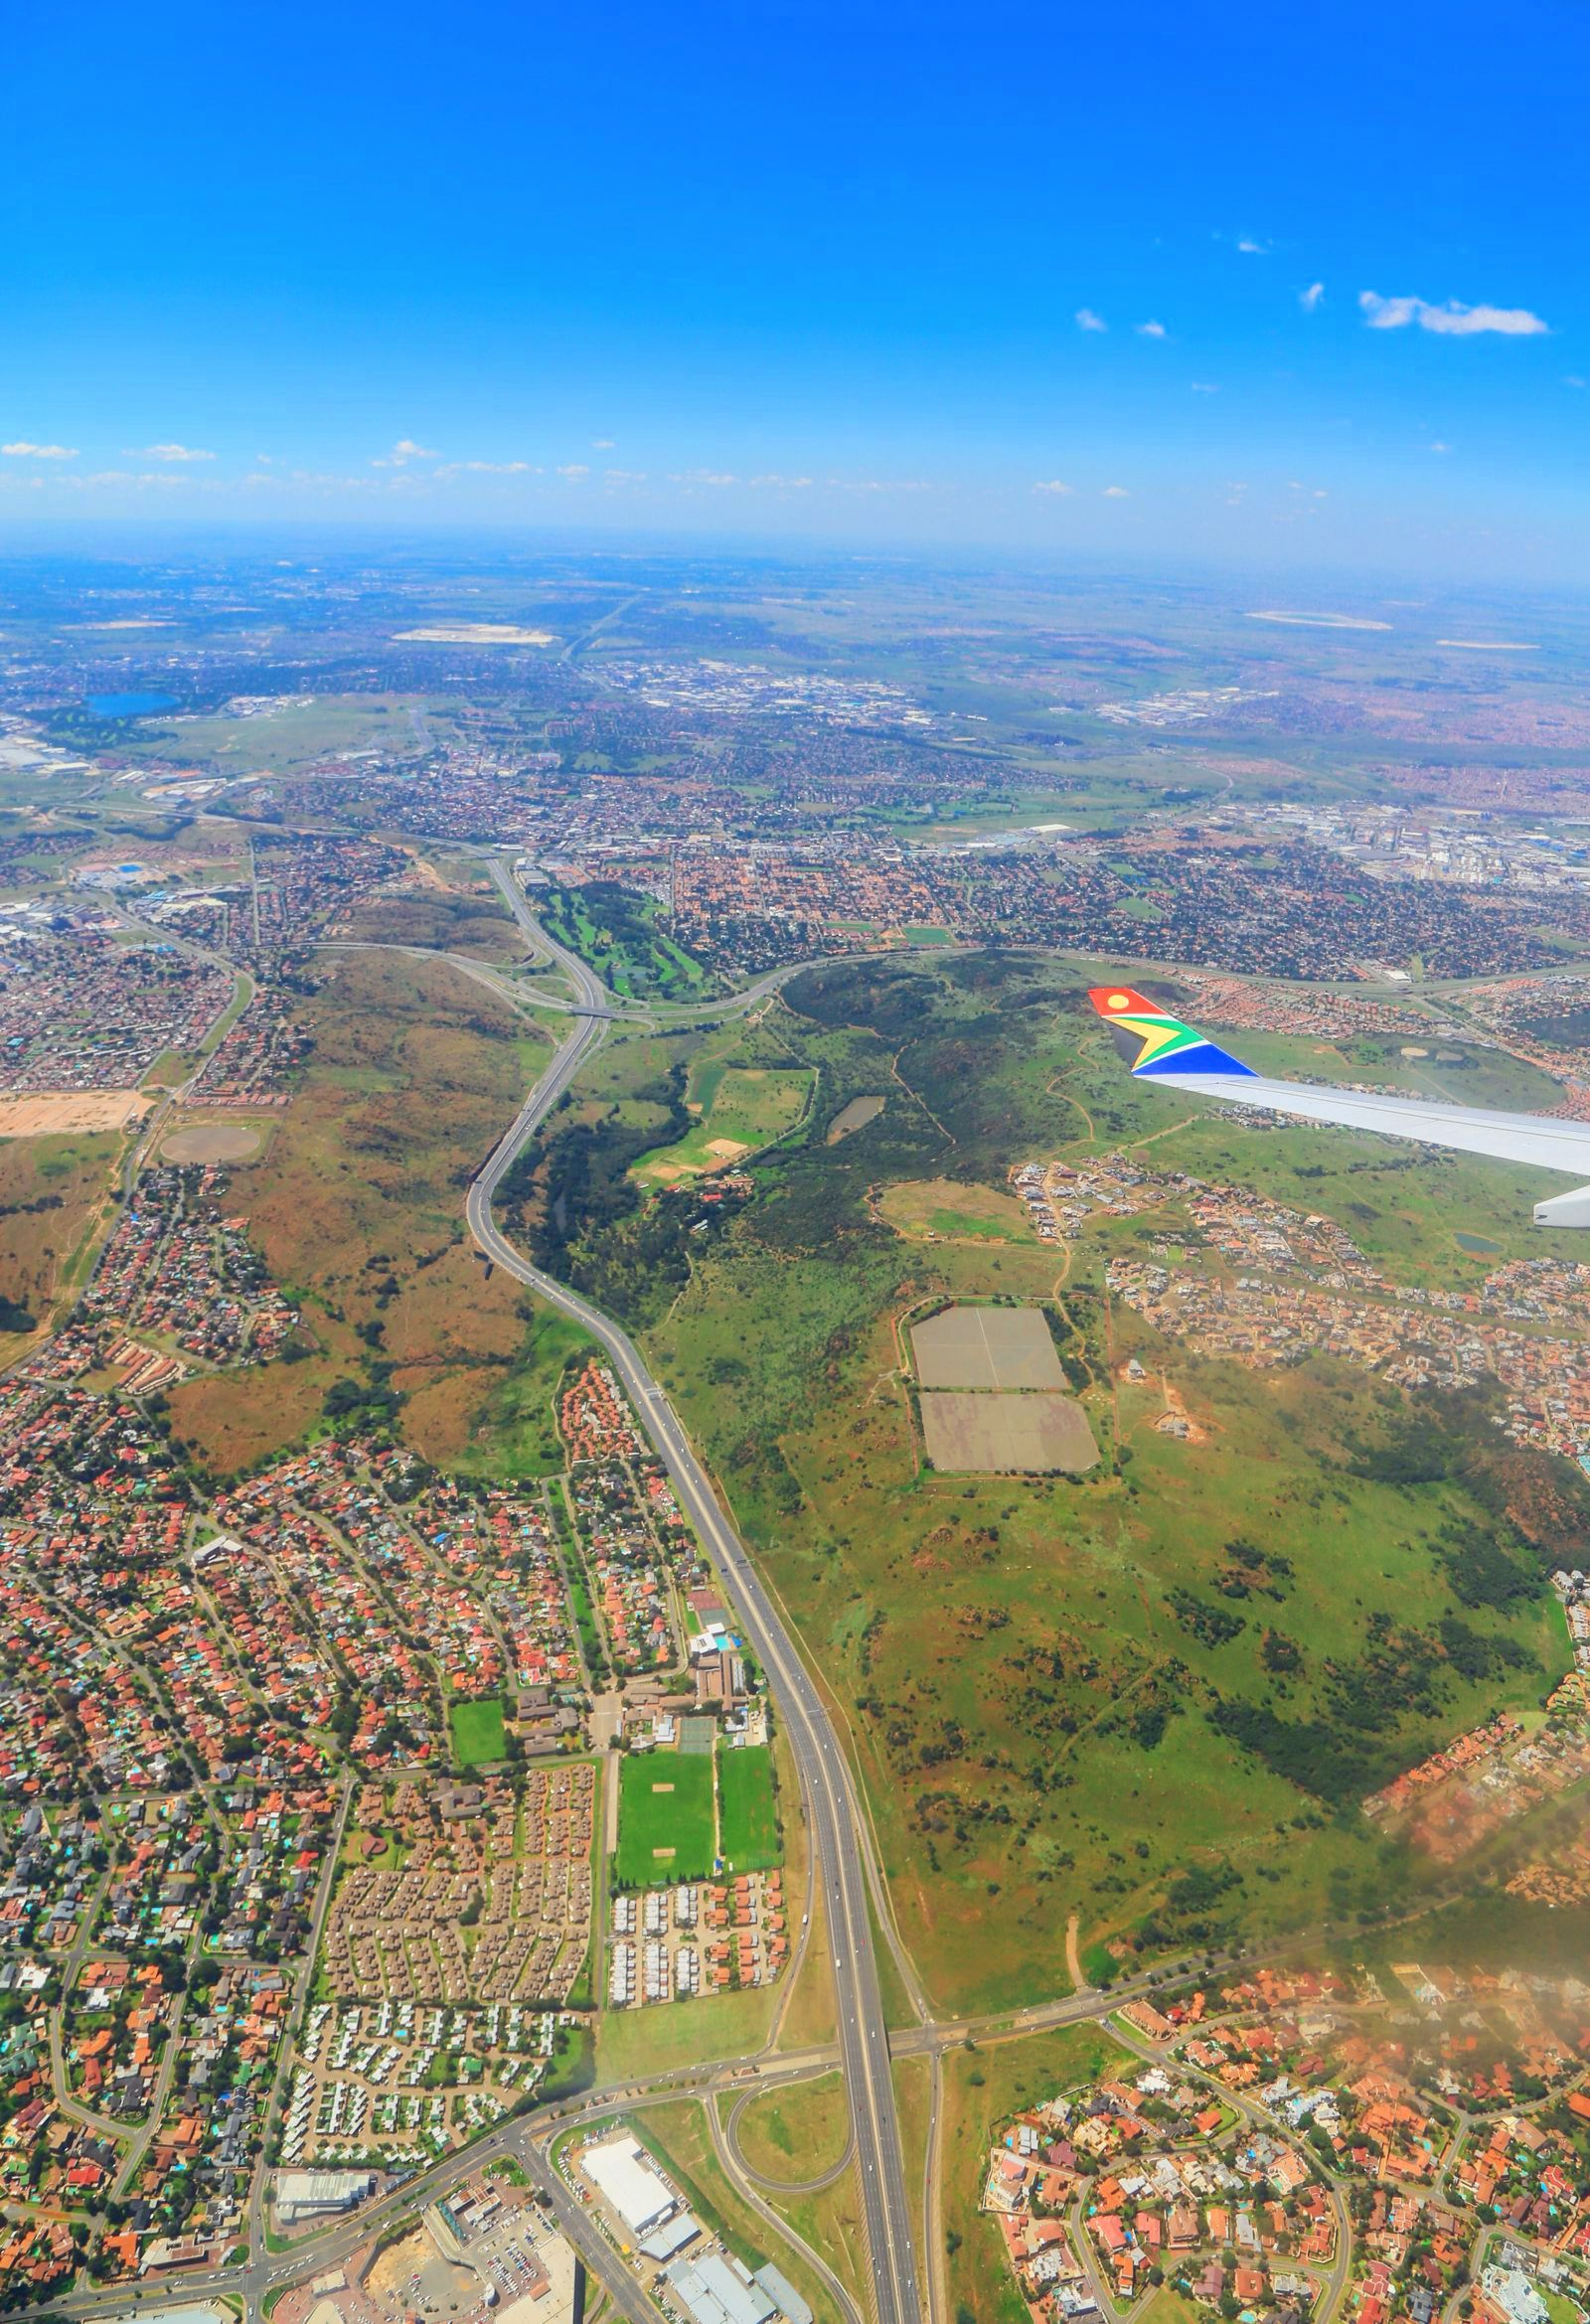 Arrival In The Eastern Cape Of South Africa (1)